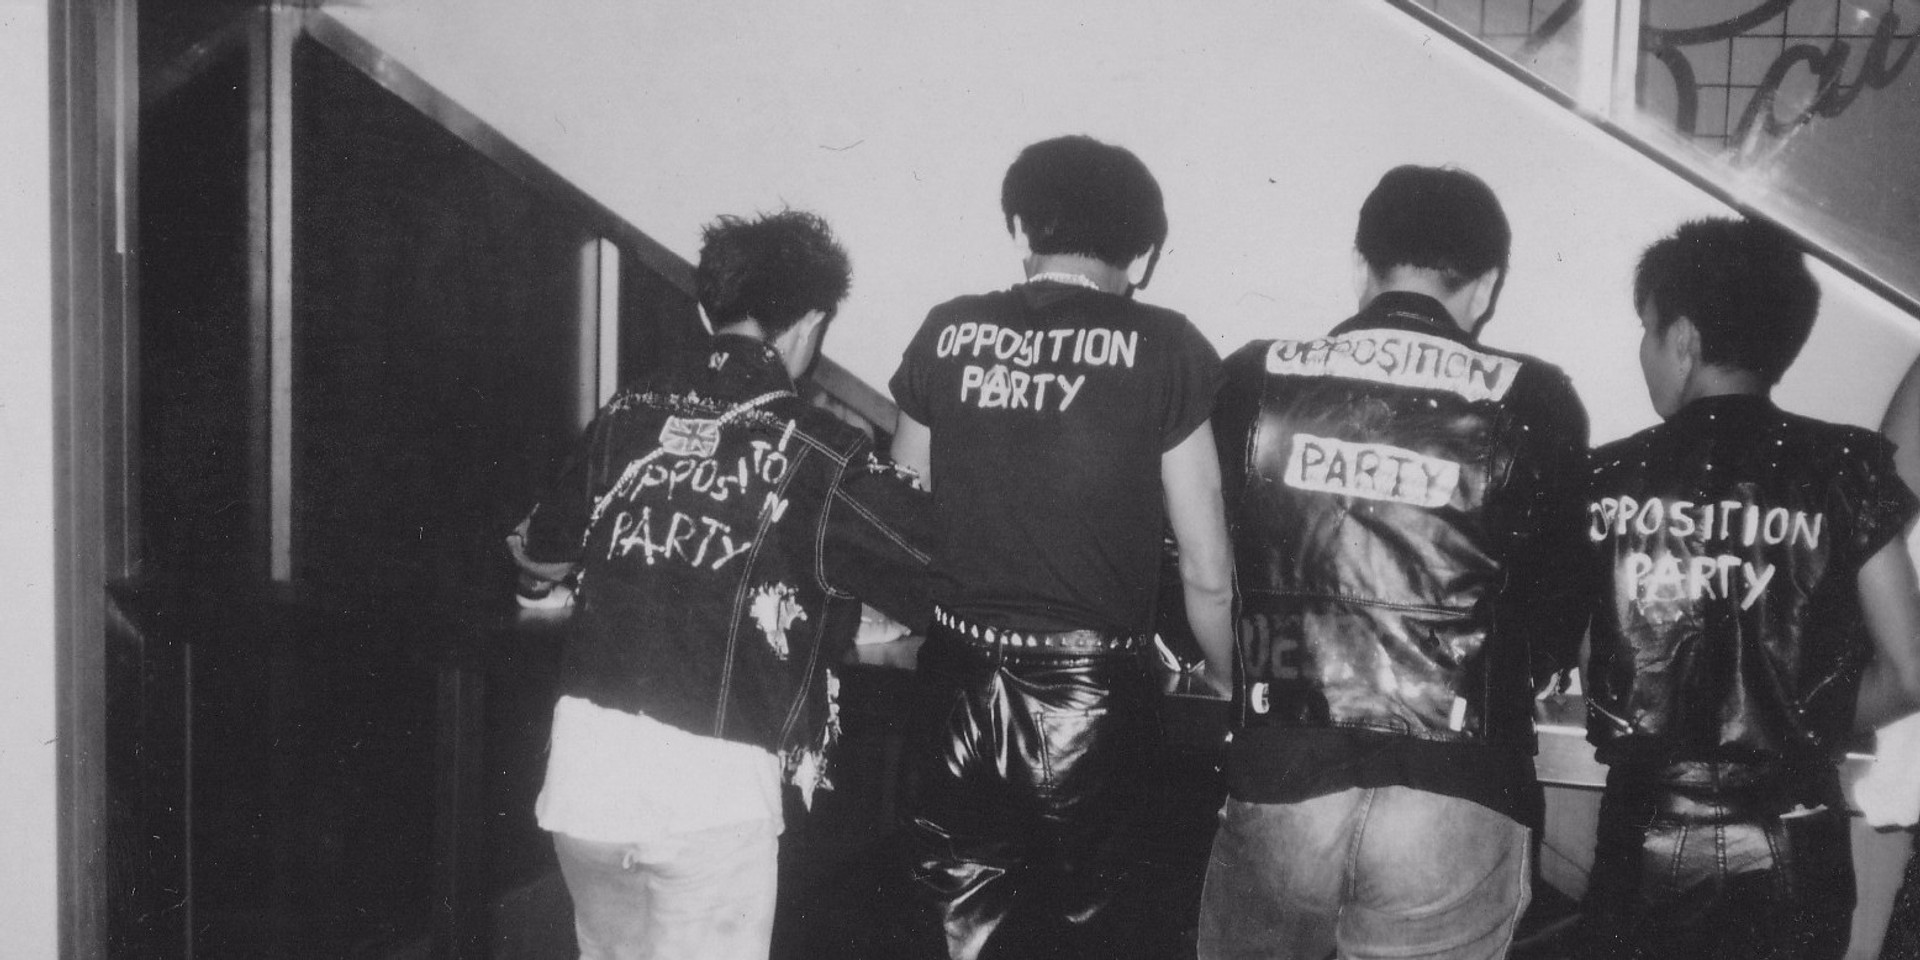 Seminal Singaporean punk/metal band Opposition Party releases 30th Anniversary collector's box-set